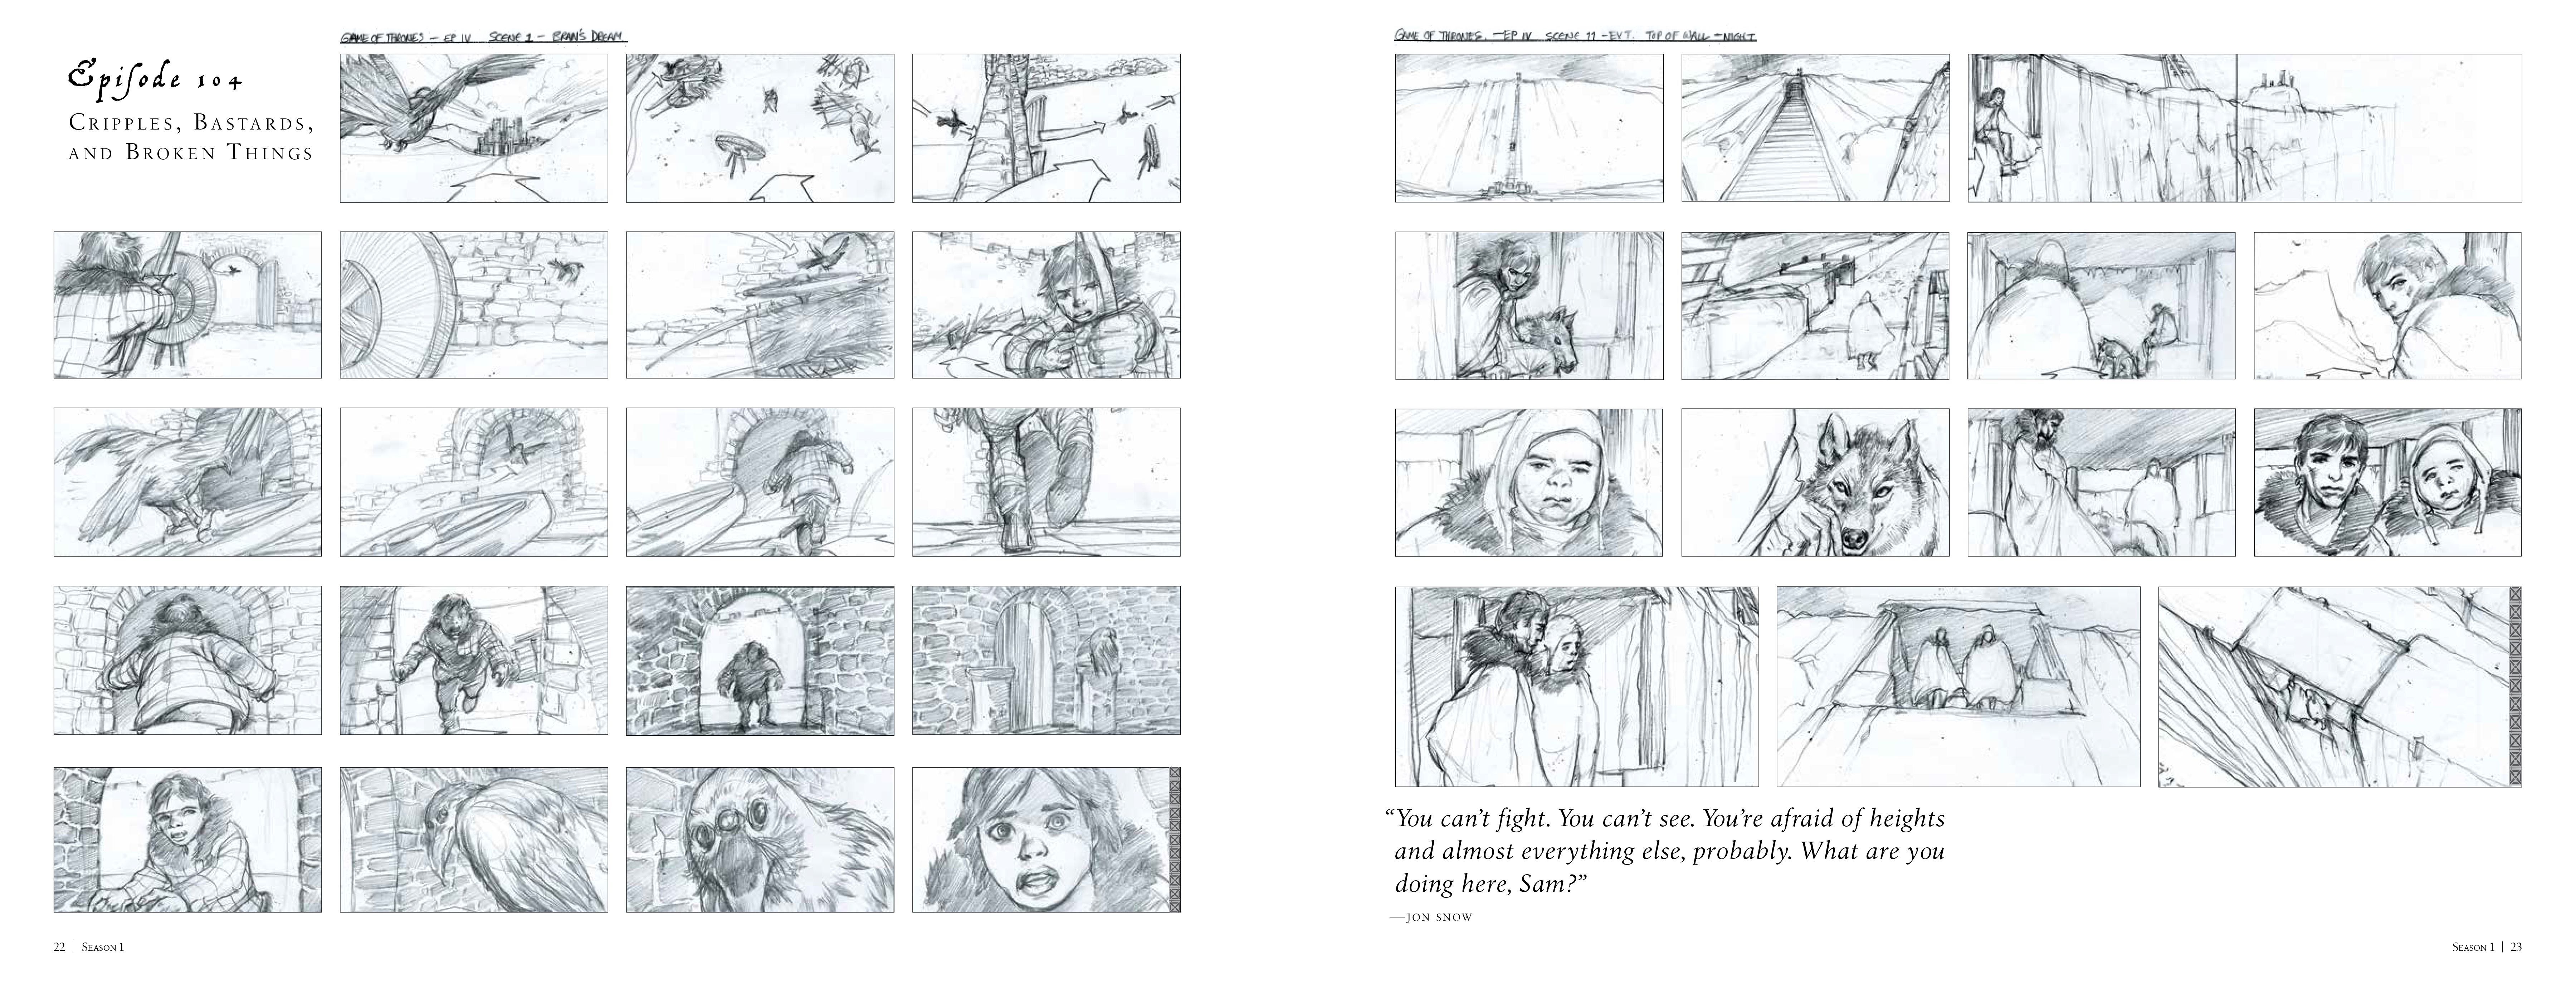 New artwork from Game of Thrones: The Storyboard